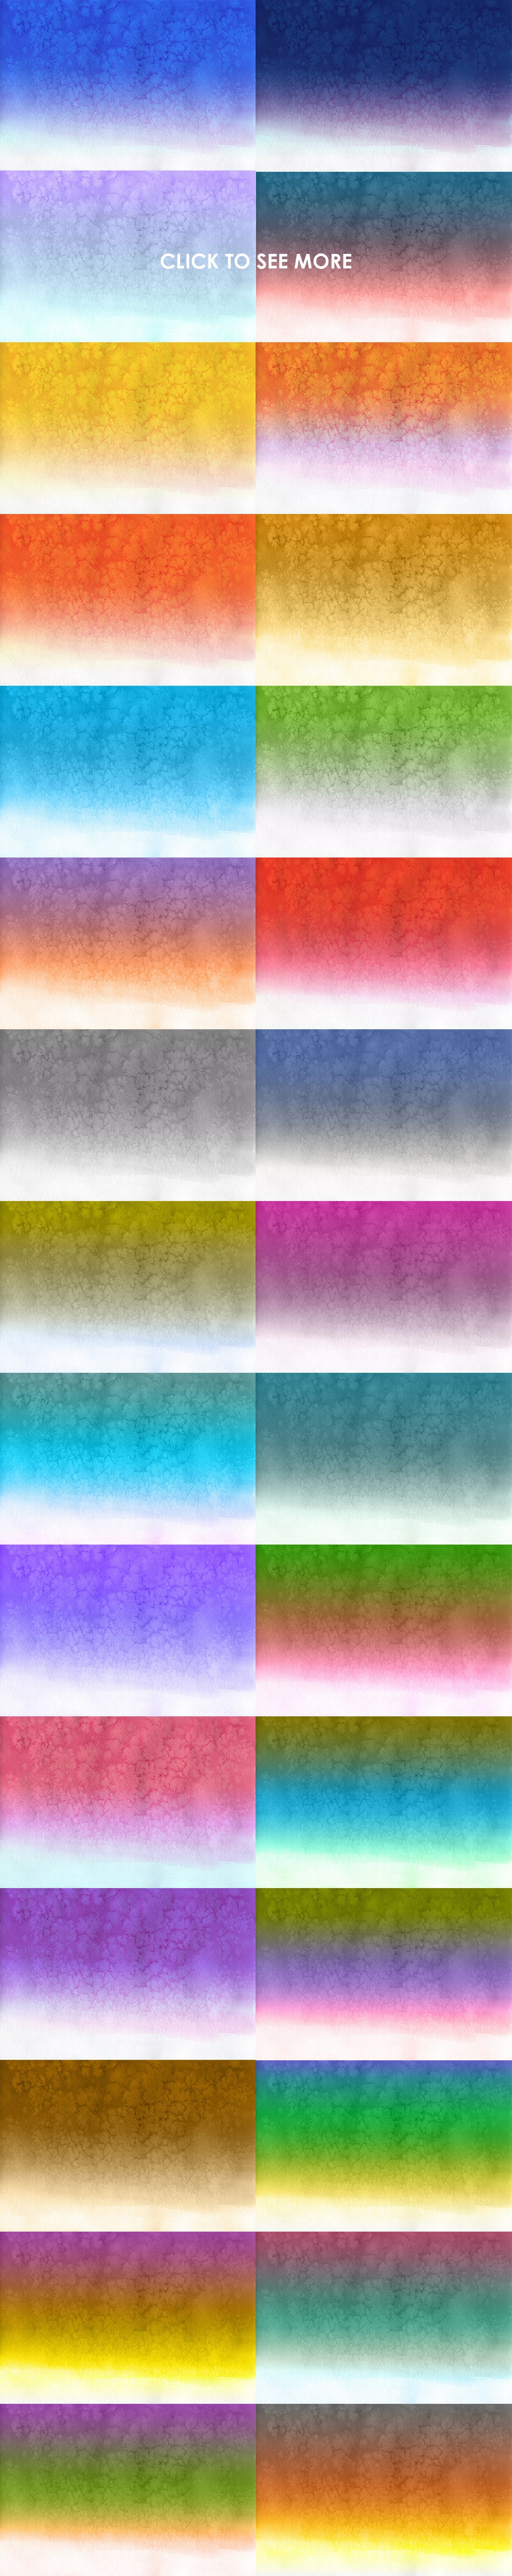 540+ Watercolor Backgrounds Bundle - 544 Items. Only $18! - watercolor gradient backgrounds prev3 o